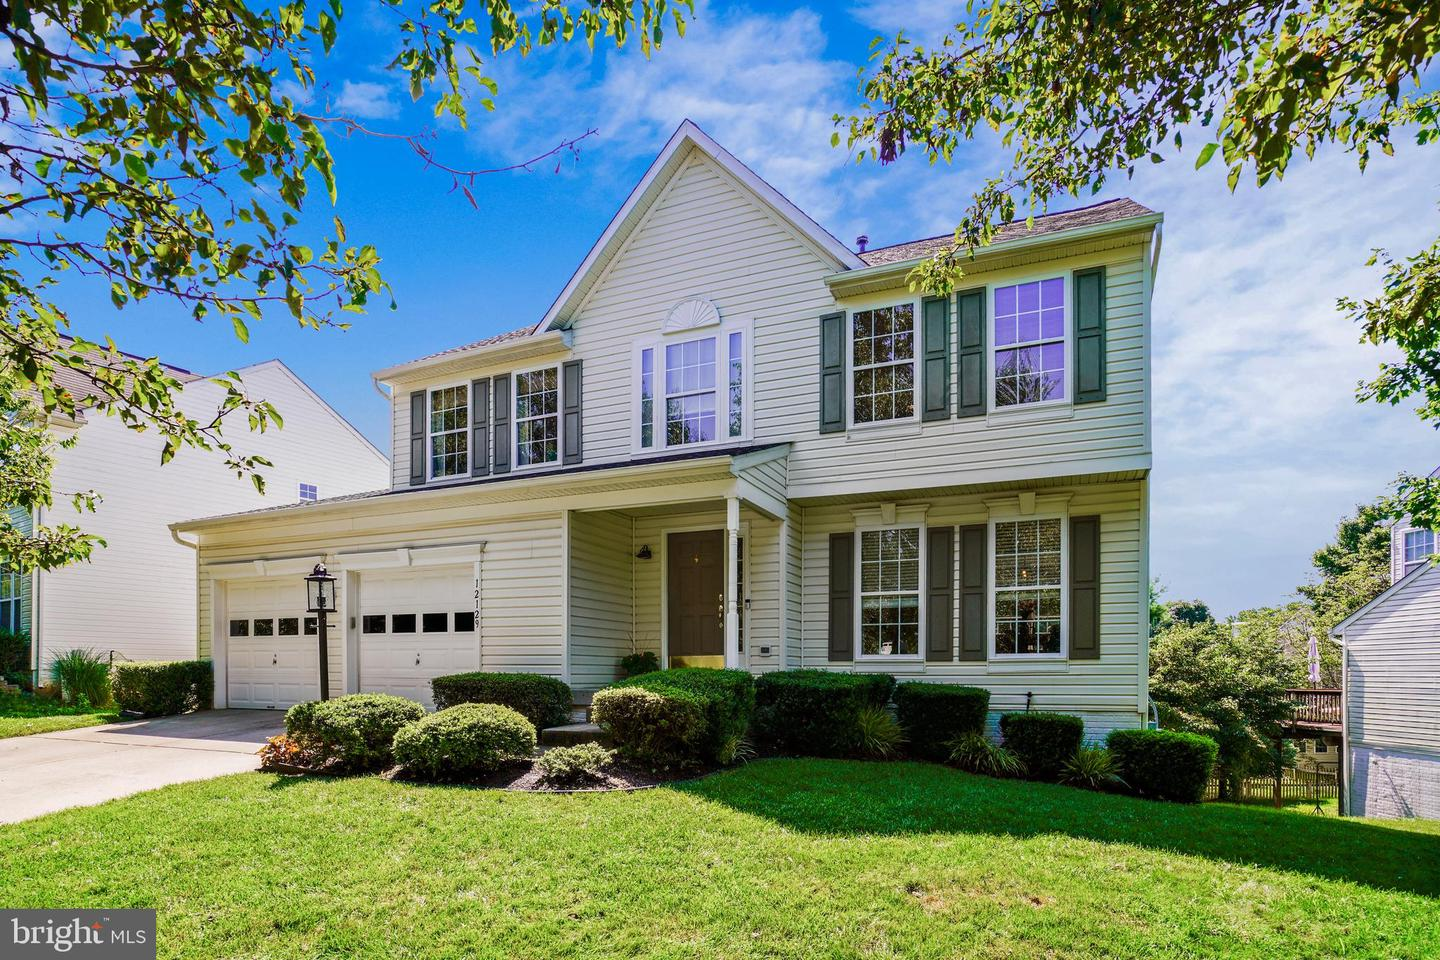 12129 Flowing Water Trail   - Clarksville, Maryland 21029